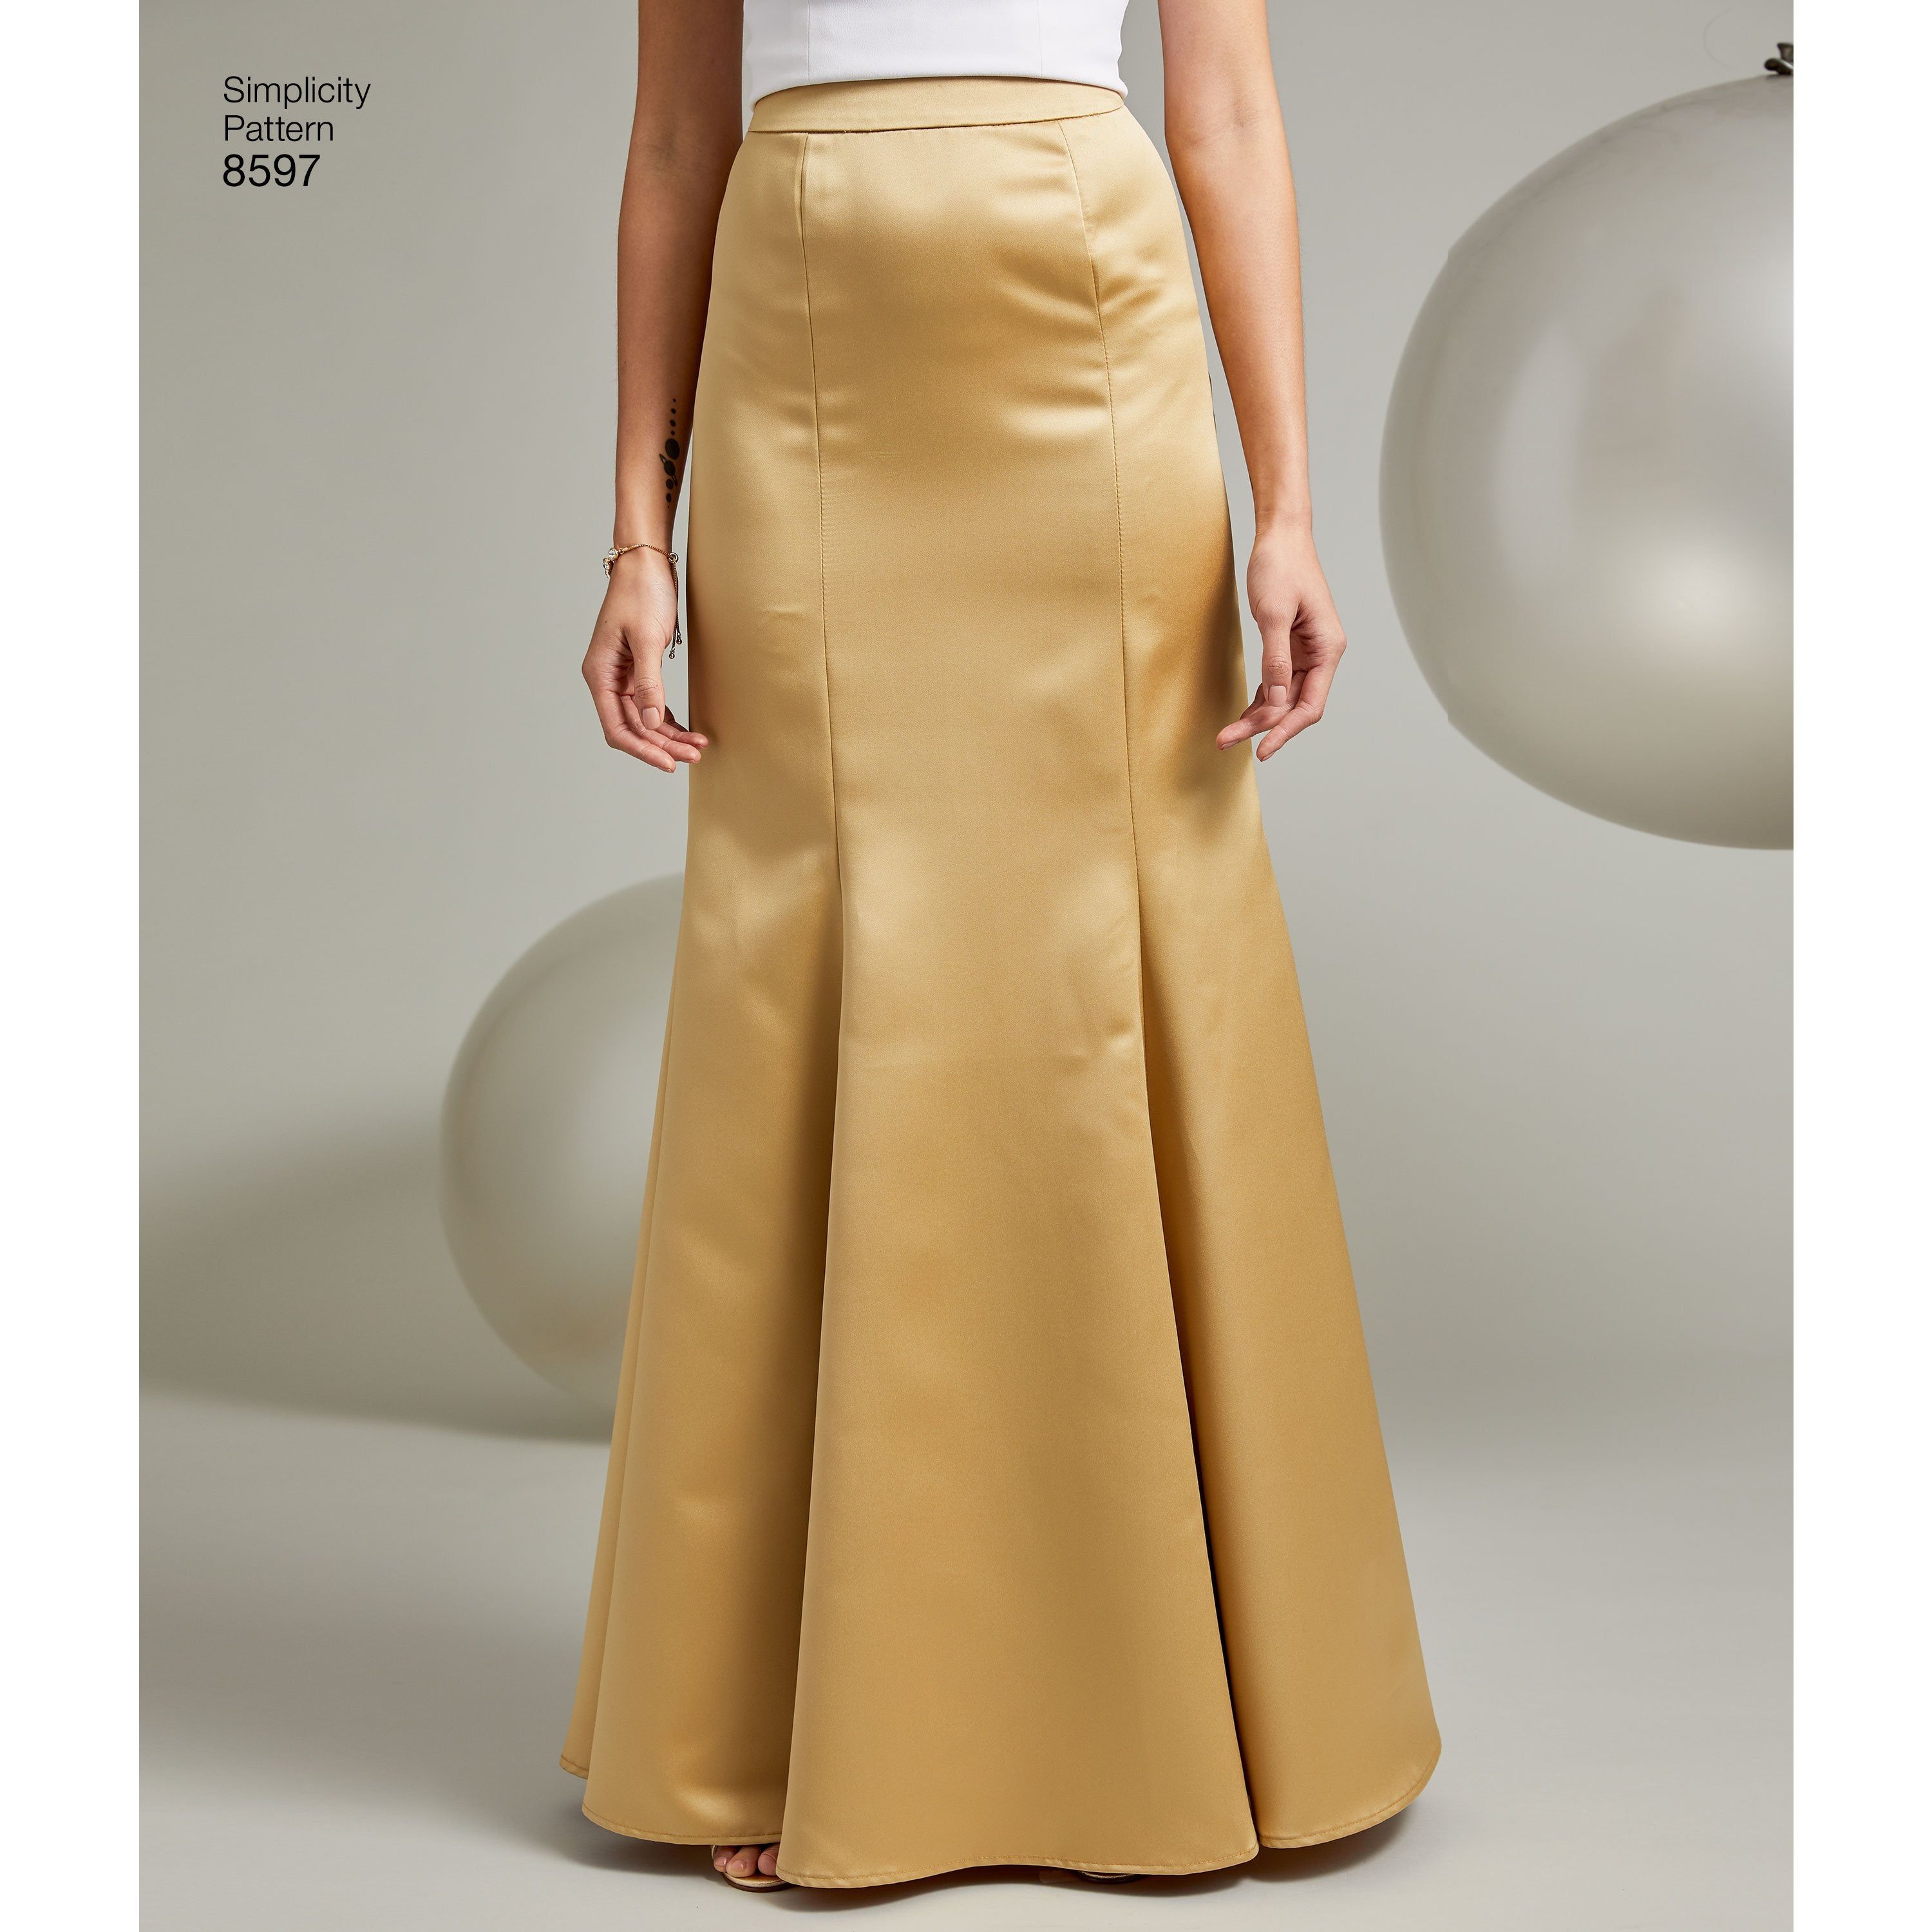 f812c4603ed4b2 S8597 Women s Special Occasion Skirts Patterns — jaycotts.co.uk ...